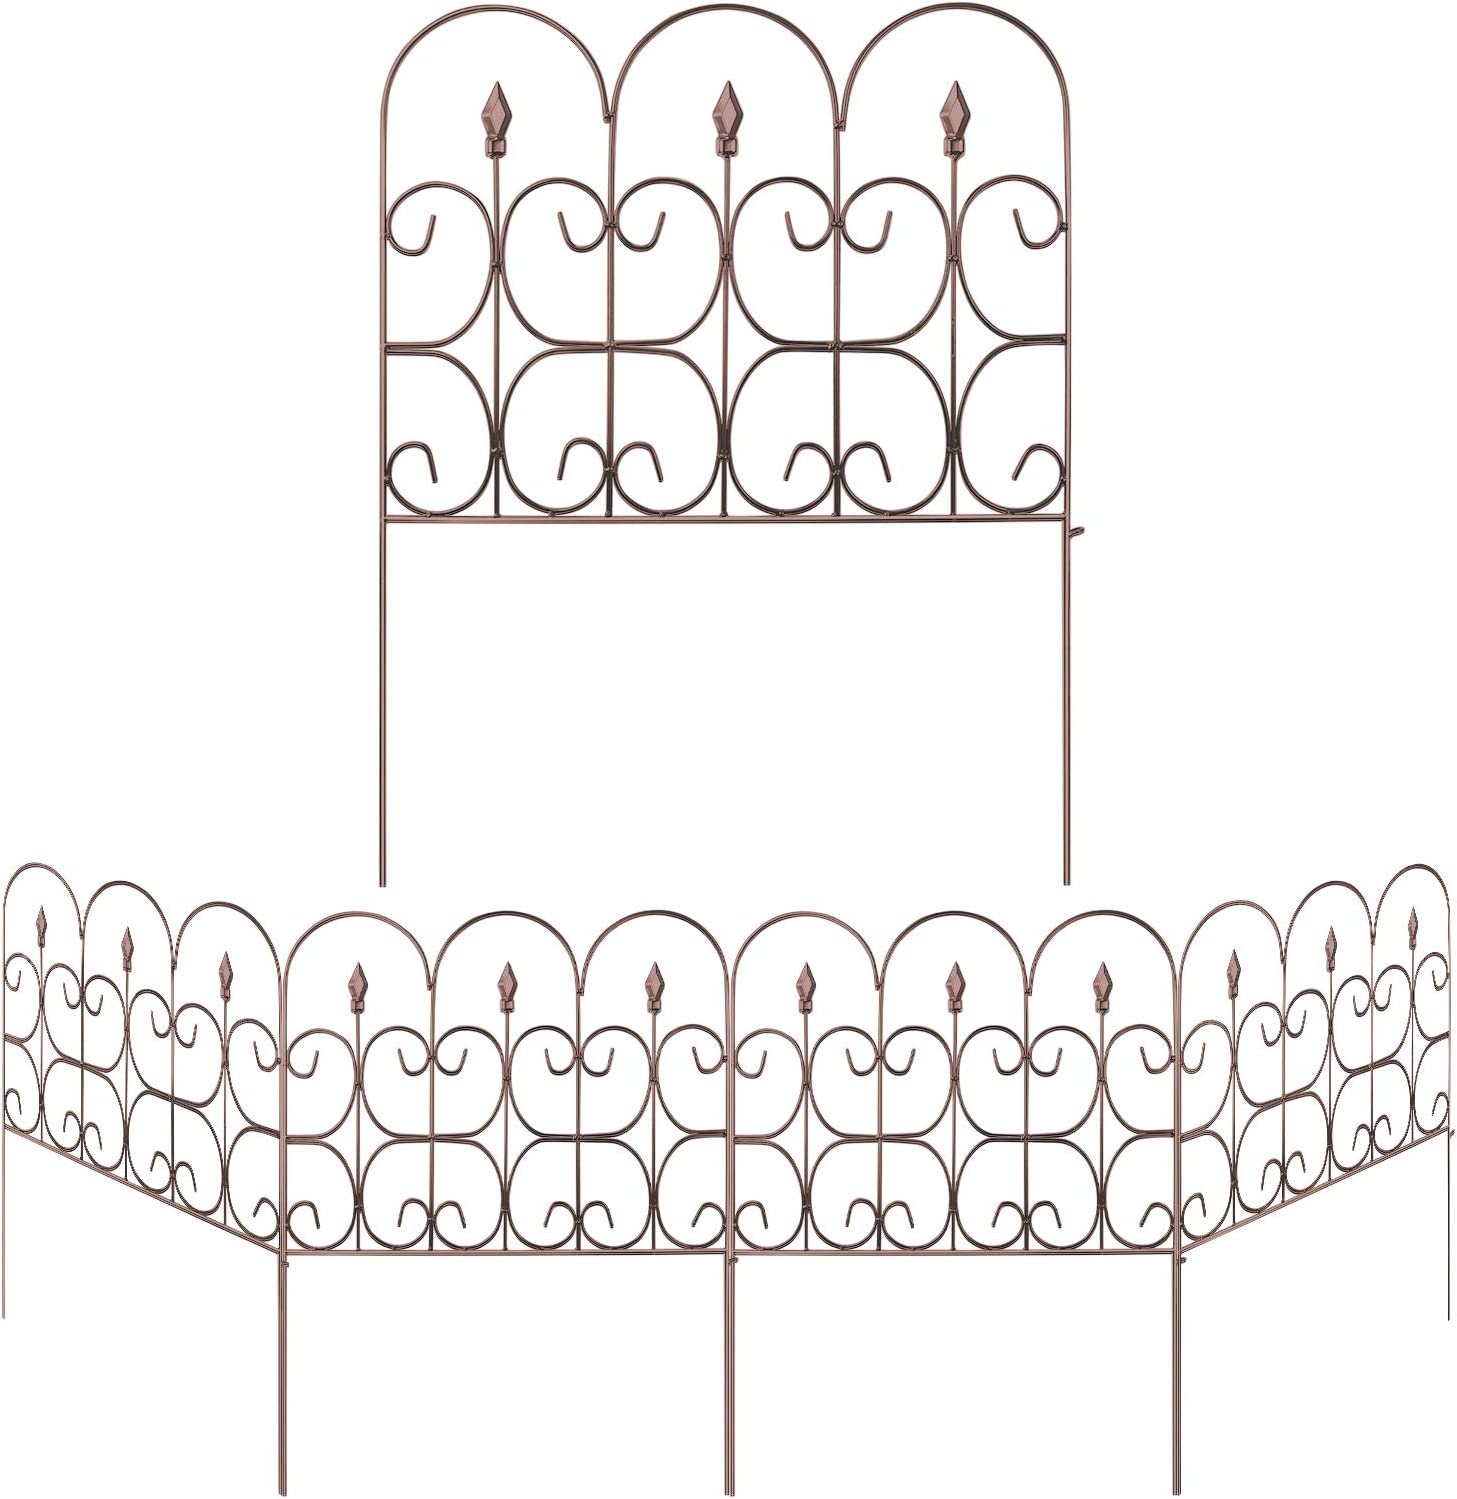 Amagabeli Decorative Garden Fence Outdoor 32in x 10ft Brown Coated Metal Rustproof Landscape Wrought Iron Wire Border Folding Patio Fences Flower Bed Fencing Barrier Section Panels Decor Picket Edging